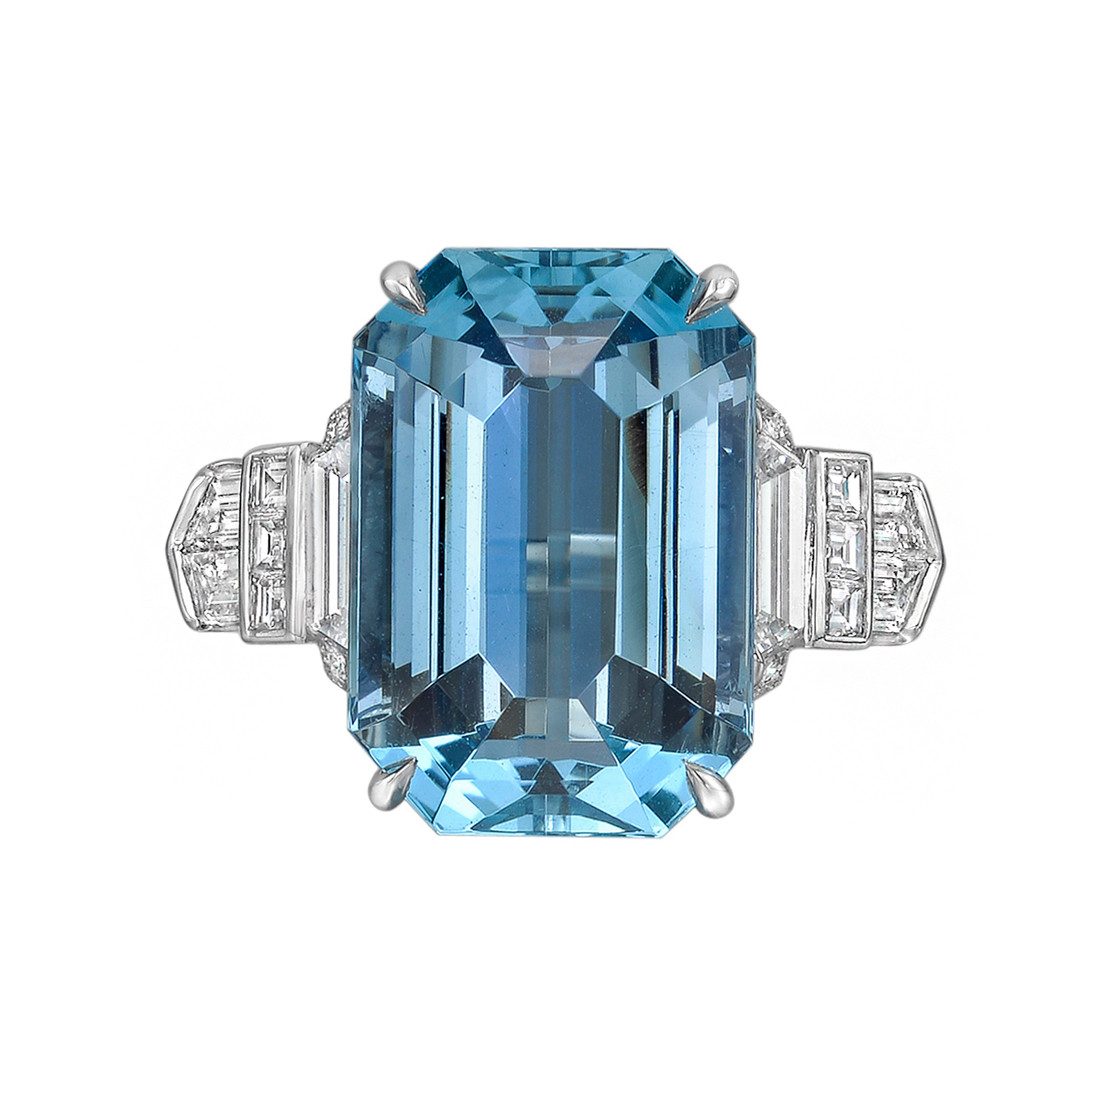 10.30ct Emerald-Cut Aquamarine & Diamond Ring